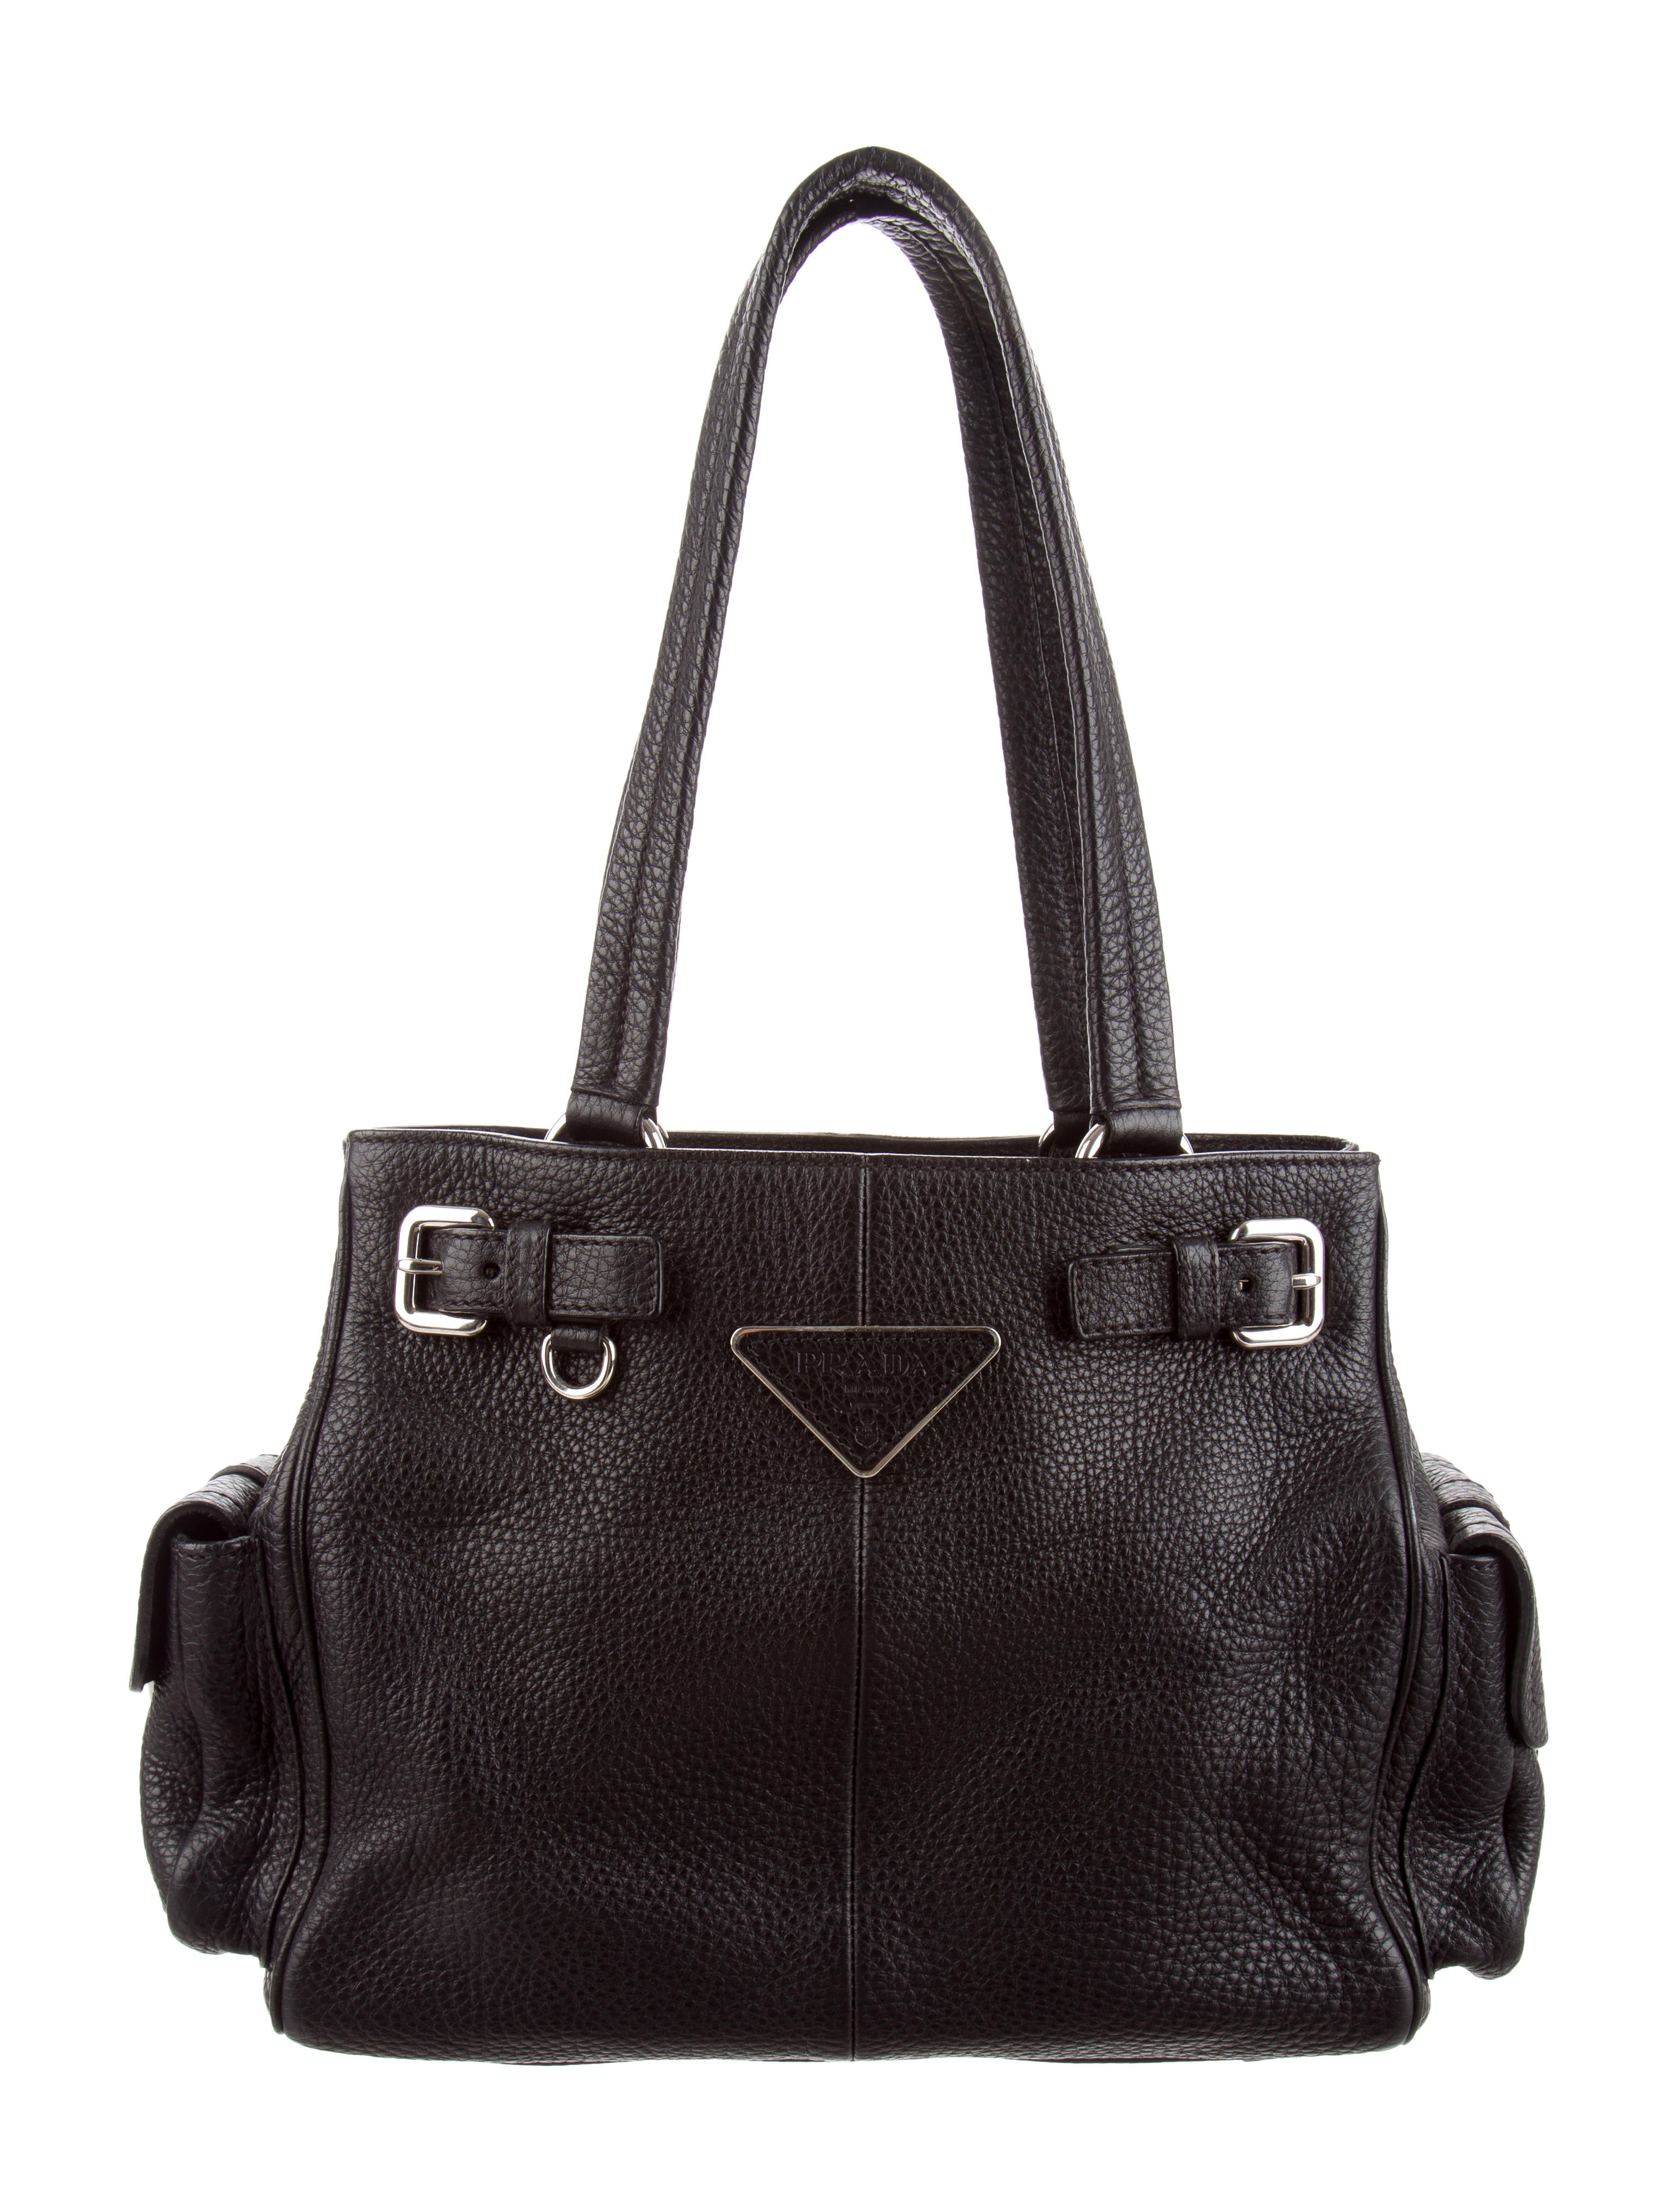 becf55c6839f Prada Vitello Daino Shoulder Bag - Handbags - PRA236316